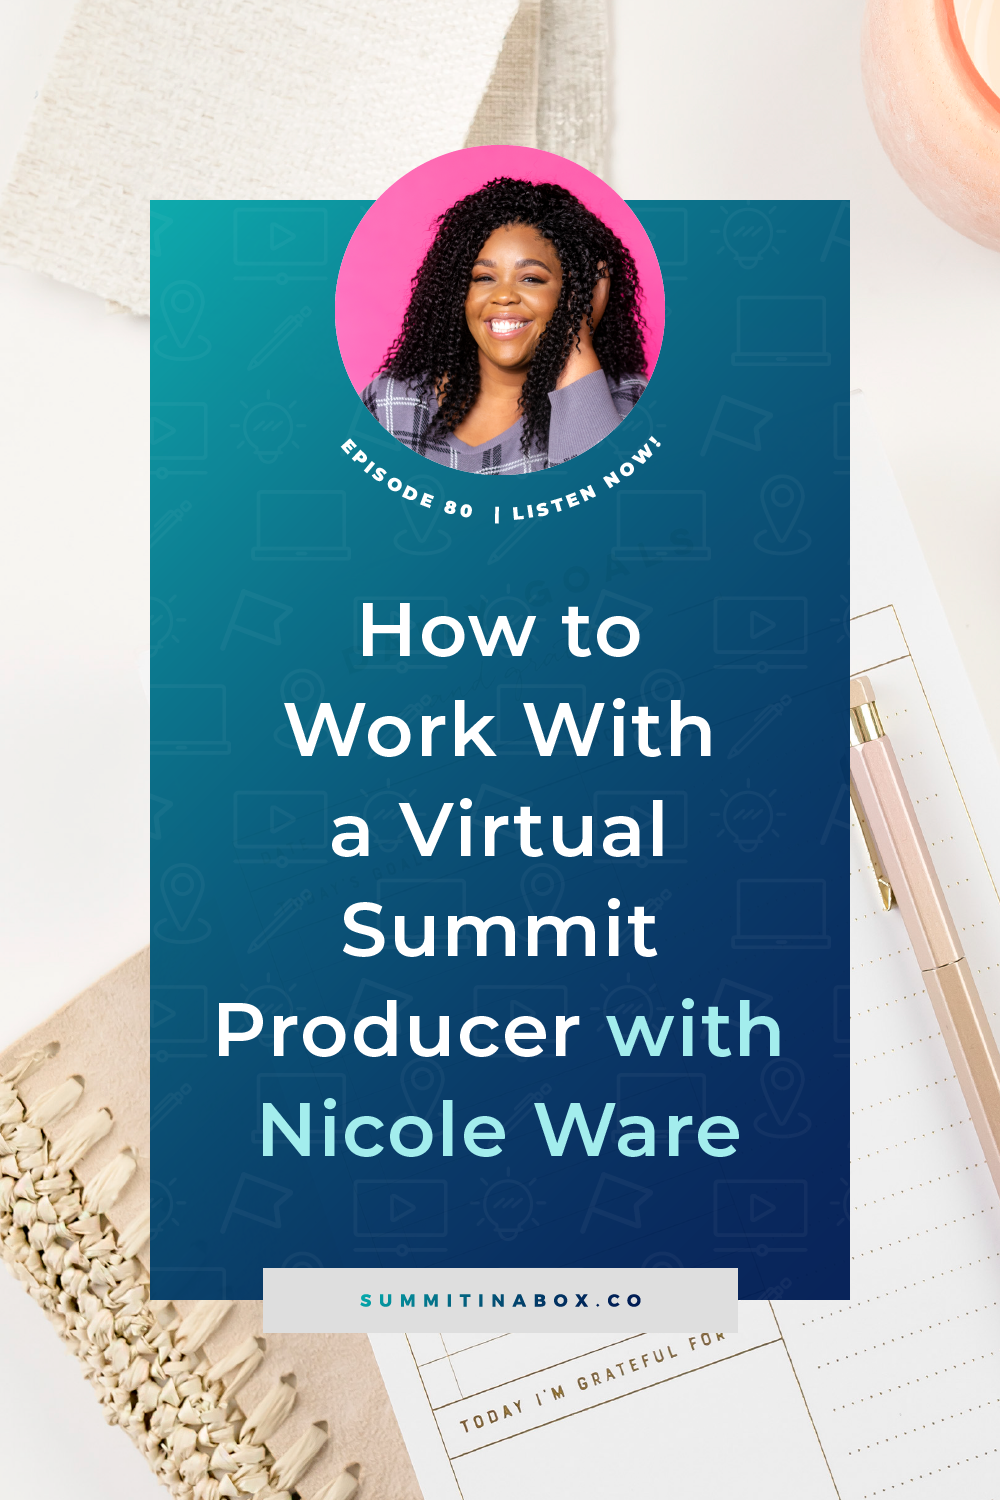 Looking to host a profitable virtual summit without managing it all yourself? Let's cover the details of working with a virtual summit producer.